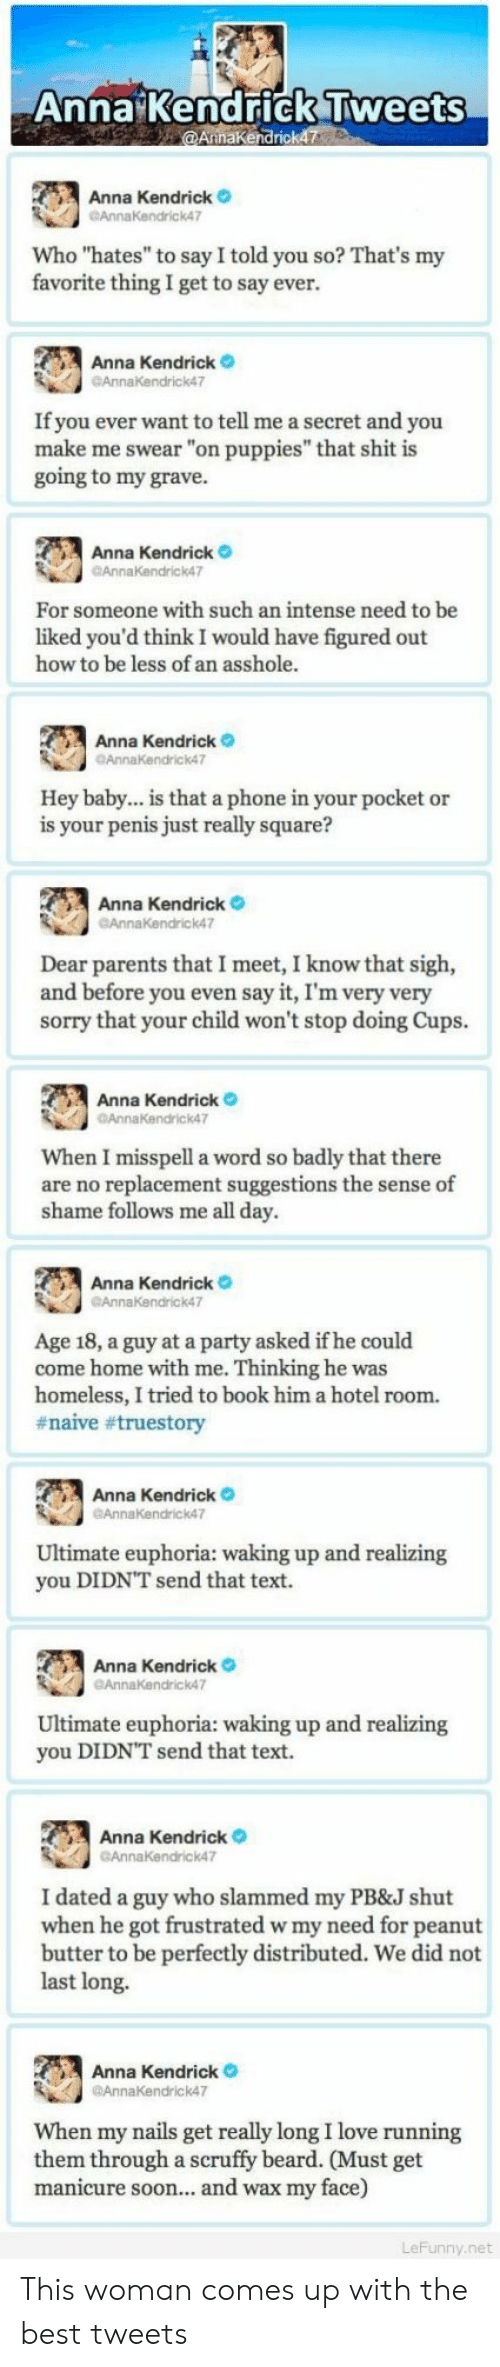 """anna kendrick: Anna Kendrick Tweets  aKendrick  , Anna Kendrick  GAnnaKendrick47  Who """"hates"""" to say I told you so? That's my  favorite thing I get to say ever.  Anna Kendrick  If you ever want to tell me a secret and you  make me swear """"on puppies"""" that shit is  going to my grave.  Anna Kendrick  AnnaKendrick47  For someone with such an intense need to be  liked you'd think I would have figured out  how to be less of an asshole.  Anna Kendrick  Hey baby... is that a phone in your pocket or  is your penis just really square?  Anna Kendrick  Annakendrick47  Dear parents that I meet, I know that sigh,  and before you even say it, I'm very very  sorry that your child won't stop doing Cups.  Anna Kendrick o  AnnaKendrick47  When I misspell a word so badly that there  are no replacement suggestions the sense of  shame follows me all day.  Anna  Kendrick。  Age 18, a guy at a party asked if he could  come home with me. Thinking he was  homeless, I tried to book him a hotel room.  #naive #truestory  Anna Kendrick  Ultimate euphoria: waking up and realizing  you DIDNT send that text.  Anna Kendrick  Ultimate euphoria: waking up and realizing  you DIDN'T send that text.  Anna Kendrick  GAnnkendrick47  I dated a guy who slammed my PB&J shut  when he got frustrated w my need for peanut  butter to be perfectly distributed. We did not  last long.  Anna Kendrick  @AnnaKendrick47  When my nails get really long I love running  them through a scruffy beard. (Must get  manicure soon... and wax my face)  8  ny.net This woman comes up with the best tweets"""